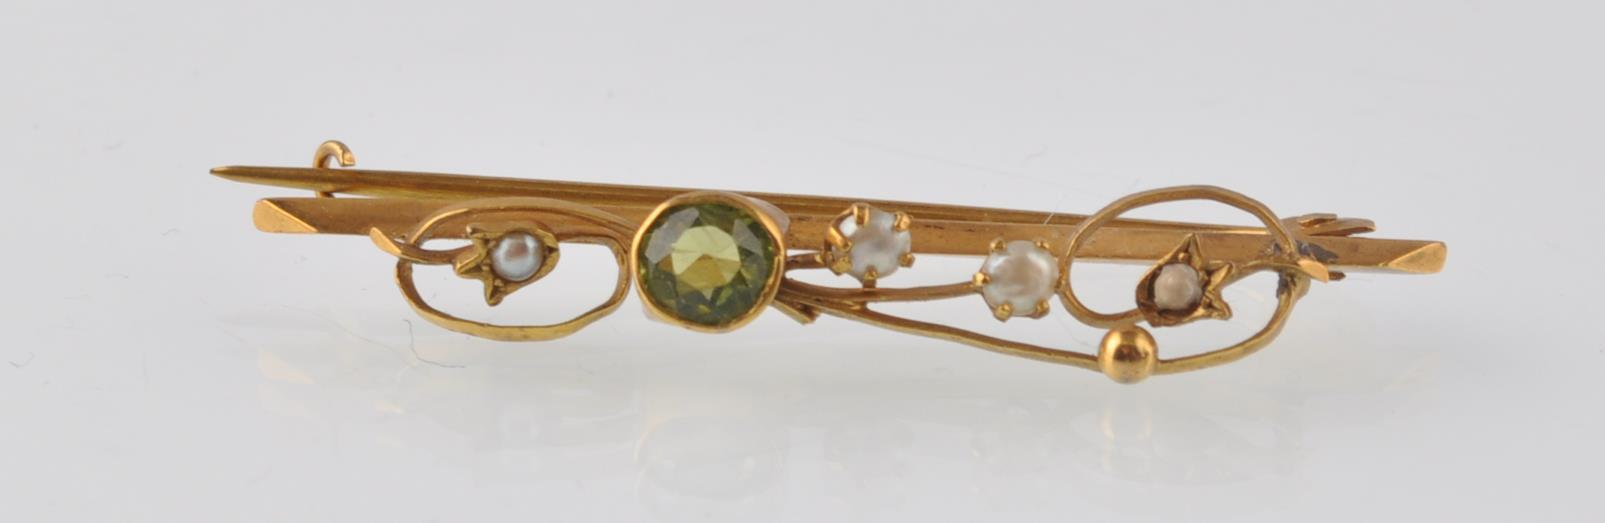 Lot 32 - ART NOUVEAU 9CT GOLD PERIDOT AND SEED PEARL BROOCH